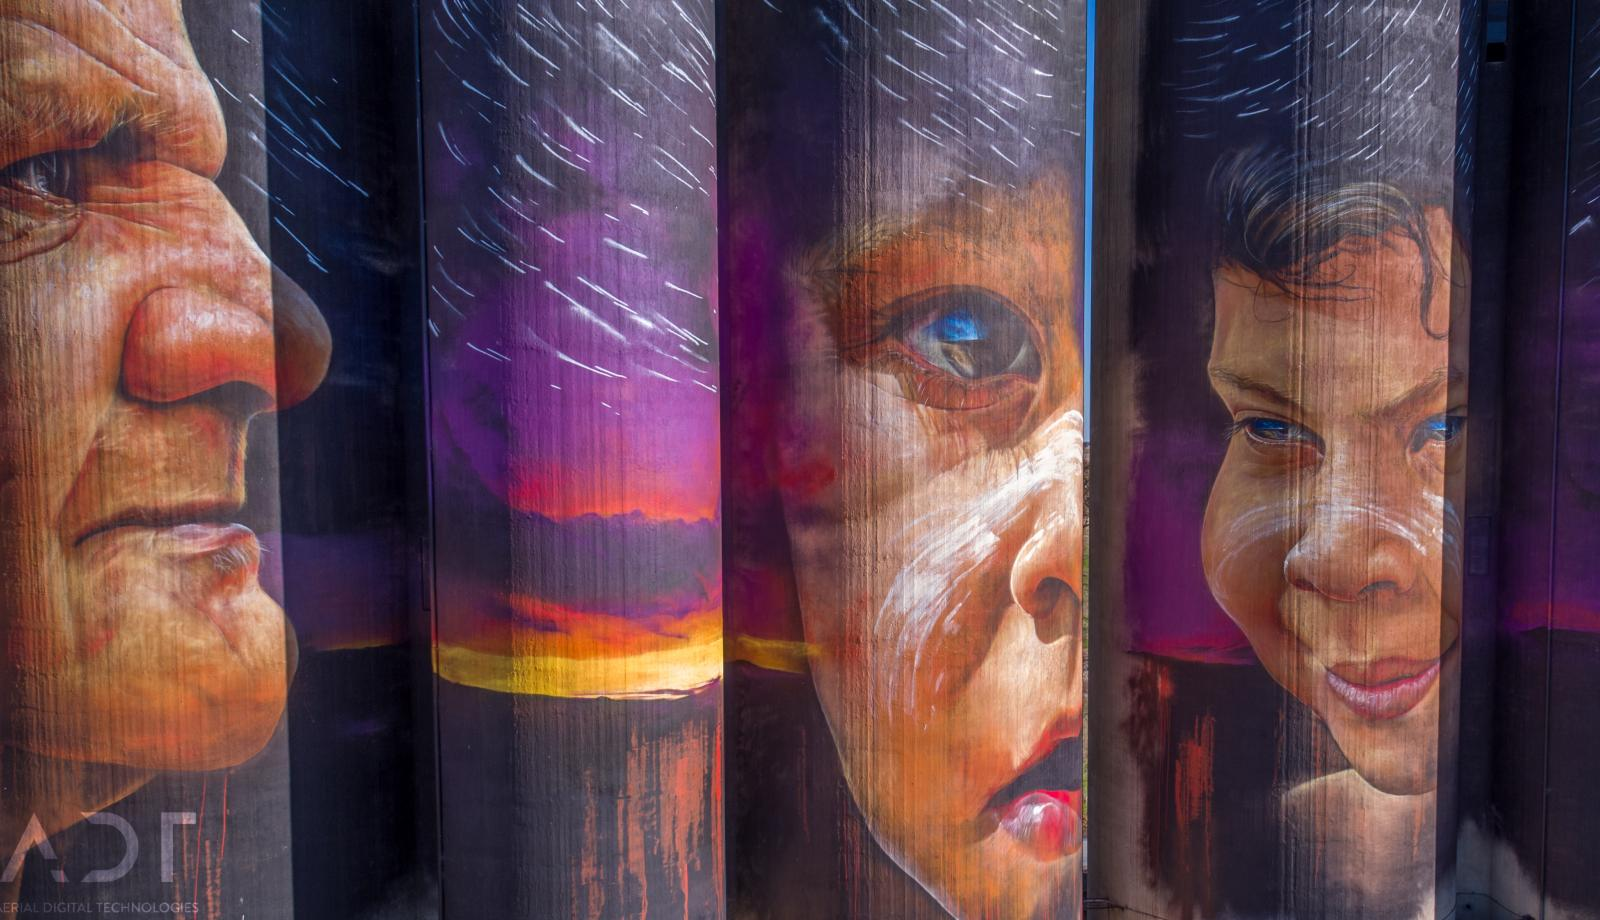 Silo art: What you need to know